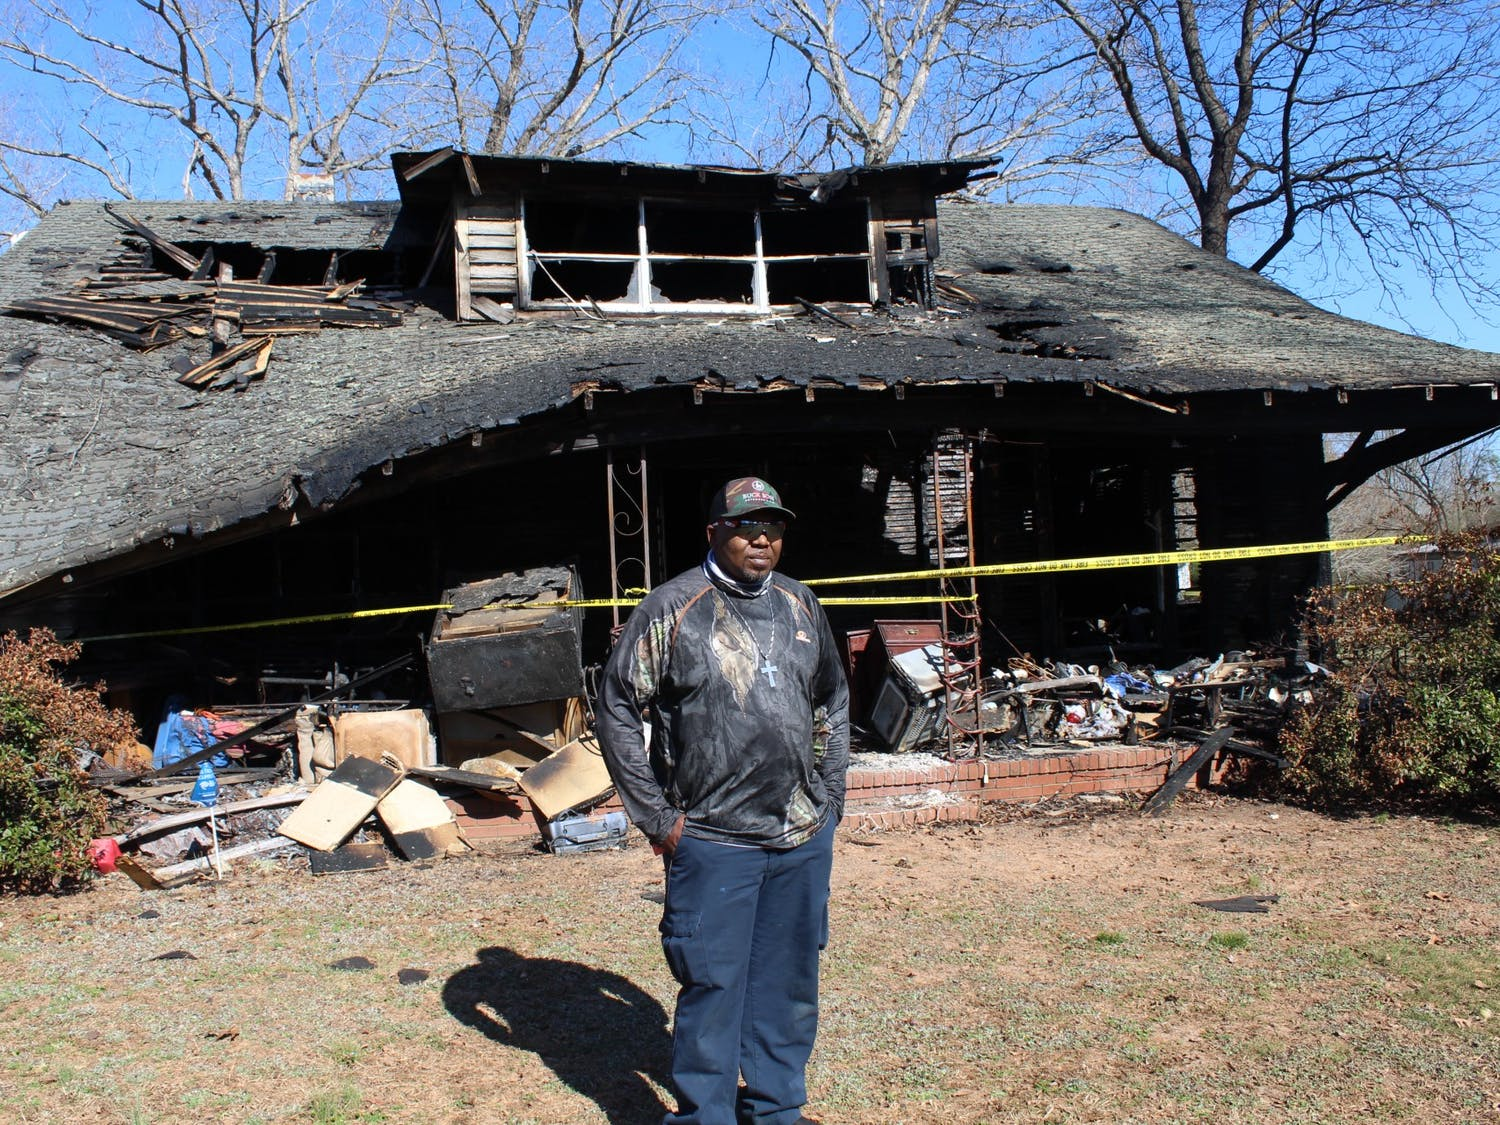 Zim Torain, an employee for the Hillsborough Utilities Department, lost his home in a house fire in February. The town is now rallying in support of him and his family, working to provide much needed items that were lost in the fire.